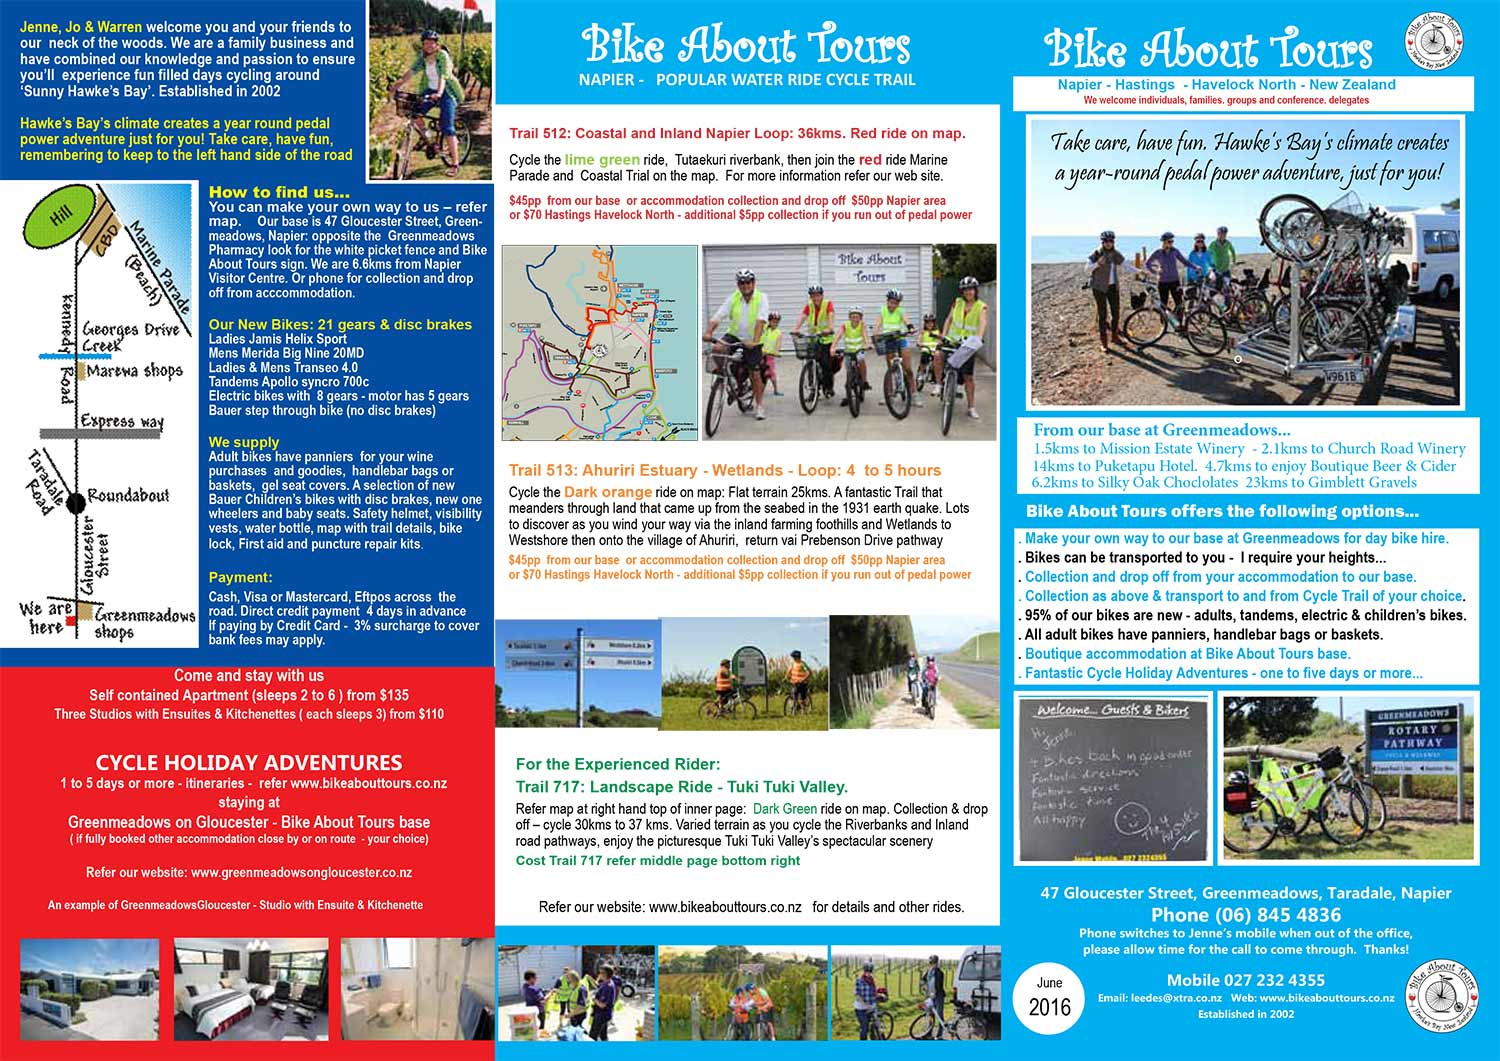 bike about tours 2016 brochure (front)